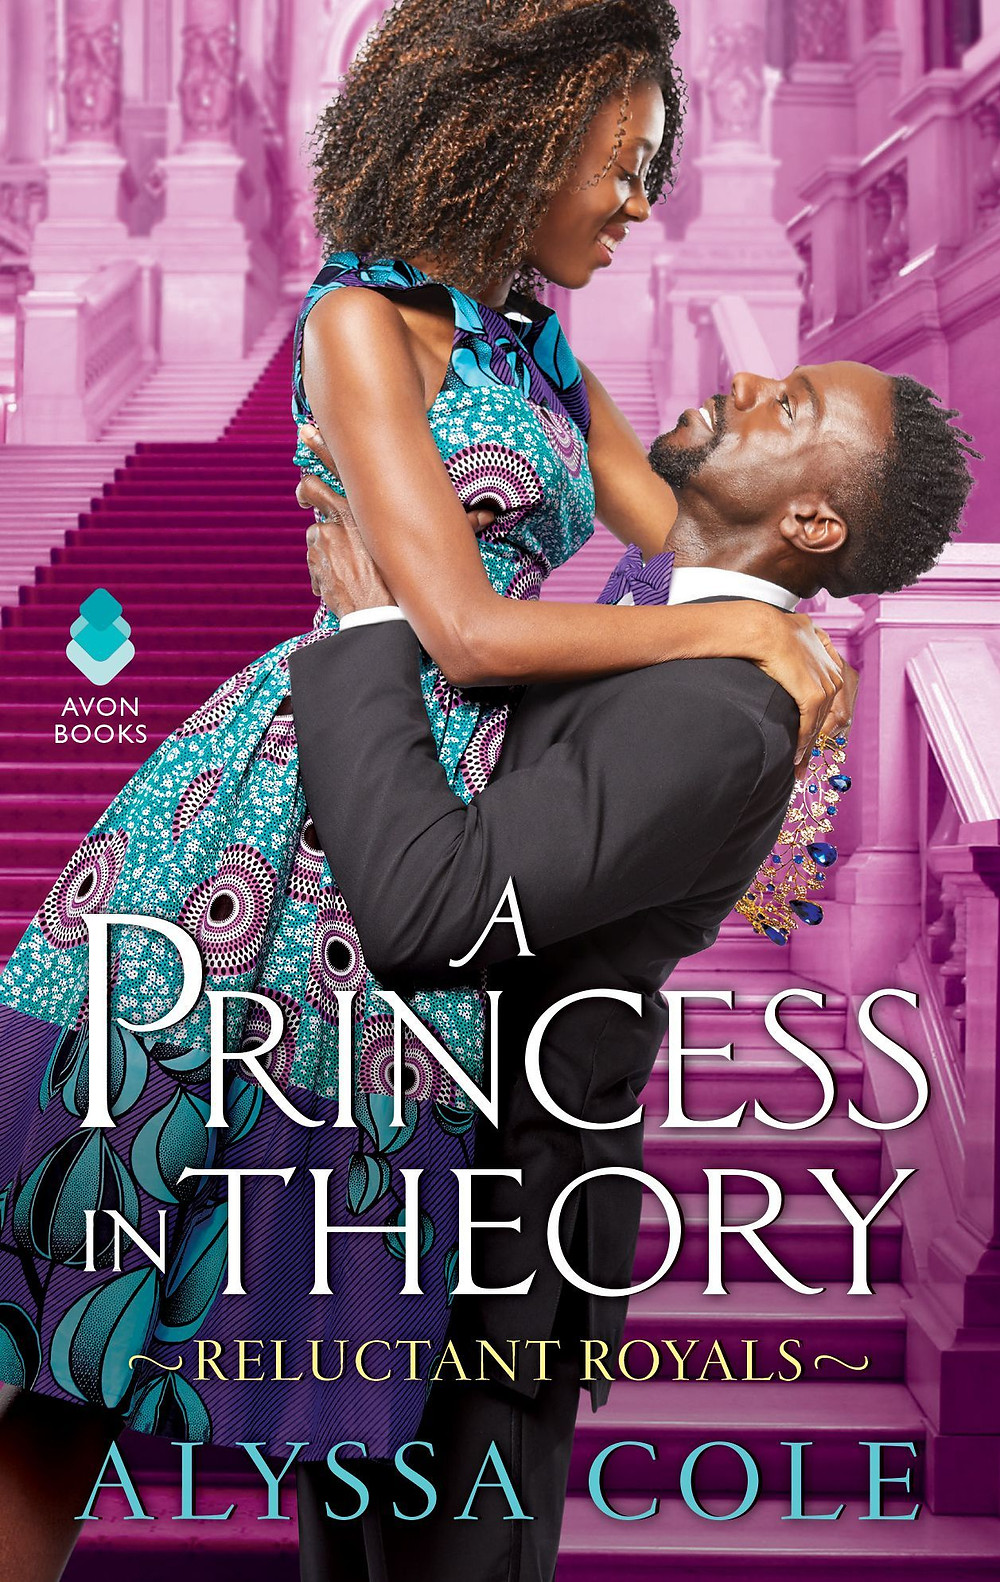 "A Princess in Theory: Reluctant Royals Alyssa Cole (Author) The Book Slut book reviews, Friday Debrief. thebookslut.com Description From acclaimed author Alyssa Cole comes the tale of a city Cinderella and her Prince Charming in disguise . . . Between grad school and multiple jobs, Naledi Smith doesn't have time for fairy tales...or patience for the constant e-mails claiming she's betrothed to an African prince. Sure. Right. Delete! As a former foster kid, she's learned that the only things she can depend on are herself and the scientific method, and a silly e-mail won't convince her otherwise. Prince Thabiso is the sole heir to the throne of Thesolo, shouldering the hopes of his parents and his people. At the top of their list? His marriage. Ever dutiful, he tracks down his missing betrothed. When Naledi mistakes the prince for a pauper, Thabiso can't resist the chance to experience life--and love--without the burden of his crown. The chemistry between them is instant and irresistible, and flirty friendship quickly evolves into passionate nights. But when the truth is revealed, can a princess in theory become a princess ever after? Selected as one of the New York Times 100 Notable Books of 2018! Publisher HarperTrophy Publish Date February 27, 2018 Pages 384 Dimensions 4.0 X 1.1 X 6.6 inches | 0.4 pounds Language English Type Mass Market Paperbound EAN/UPC 9780062685544 BISAC Categories: Romance - Contemporary Romance - Multicultural & Interracial Romance - Romantic Comedy. About the Author Alyssa Cole is an award-winning author of historical, contemporary, and sci-fi romance. Her books have received critical acclaim from The New York Times, Library Journal, BuzzFeed, Kirkus, Booklist, Jezebel, Vulture, Book Riot, Entertainment Weekly, and various other outlets. When she's not working, she can usually be found watching anime with her husband or wrangling their menagerie of animals. Reviews ""Alyssa Cole is the newly coronated queen of contemporary royal romance! A Princess in Theory is delicious fun... a smart, funny heroine; a sweetly sexy prince; swoon-worthy romance; and an epic happily-ever-after. Long live the queen!""--Meg Cabot, #1 New York Times bestselling author of The Princess Diaries ""A delightful and sexy take on love between a suave African prince and a nerdy epidemiology student.""--Kirkus Reviews (starred review) ""Attention-grabbing from page one, this first book in the Reluctant Royals series will absolutely warm your heart. A Princess in Theory is a delightful love story that introduces a princess -- with attitude! -- who readers will enjoy rooting for. Naledi is skeptical about modern royalty, but her ambition and tough demeanor shine. Cultural differences aside, this is a simple and heartfelt story to be savored.""--RT Book Reviews (4 1/2 stars- TOP PICK) ""a funny, fast-moving, smart-alecky romance... A PRINCESS IN THEORY is pure fun. It will have you laughing, cringing and hooked from the start!""--Romance Junkies ""the best new romance I've read in a while...""--New York Times Book Review ""This is a fun, fanciful romance perfect for readers dreaming of royal weddings.""--BookPage ""In Cole's world, royalty and romance go hand in hand with compassion, open-heartedness, and intelligence, as well as a clear-eyed sense of real-world politics. A Princess in Theory is a fairy tale, yes, but one consistently grounded in reality, which makes the happily-ever-after all the more satisfying.""--Entertainment Weekly ""This book was a lot of fun, sexy, with a compelling story. I really enjoyed the romance as it developed between Ledi and Thabioso, both interesting characters together and as individuals. Lots of erotic tension and a deeply satisfying ending. Definitely dive into this one.""--Roxane Gay"